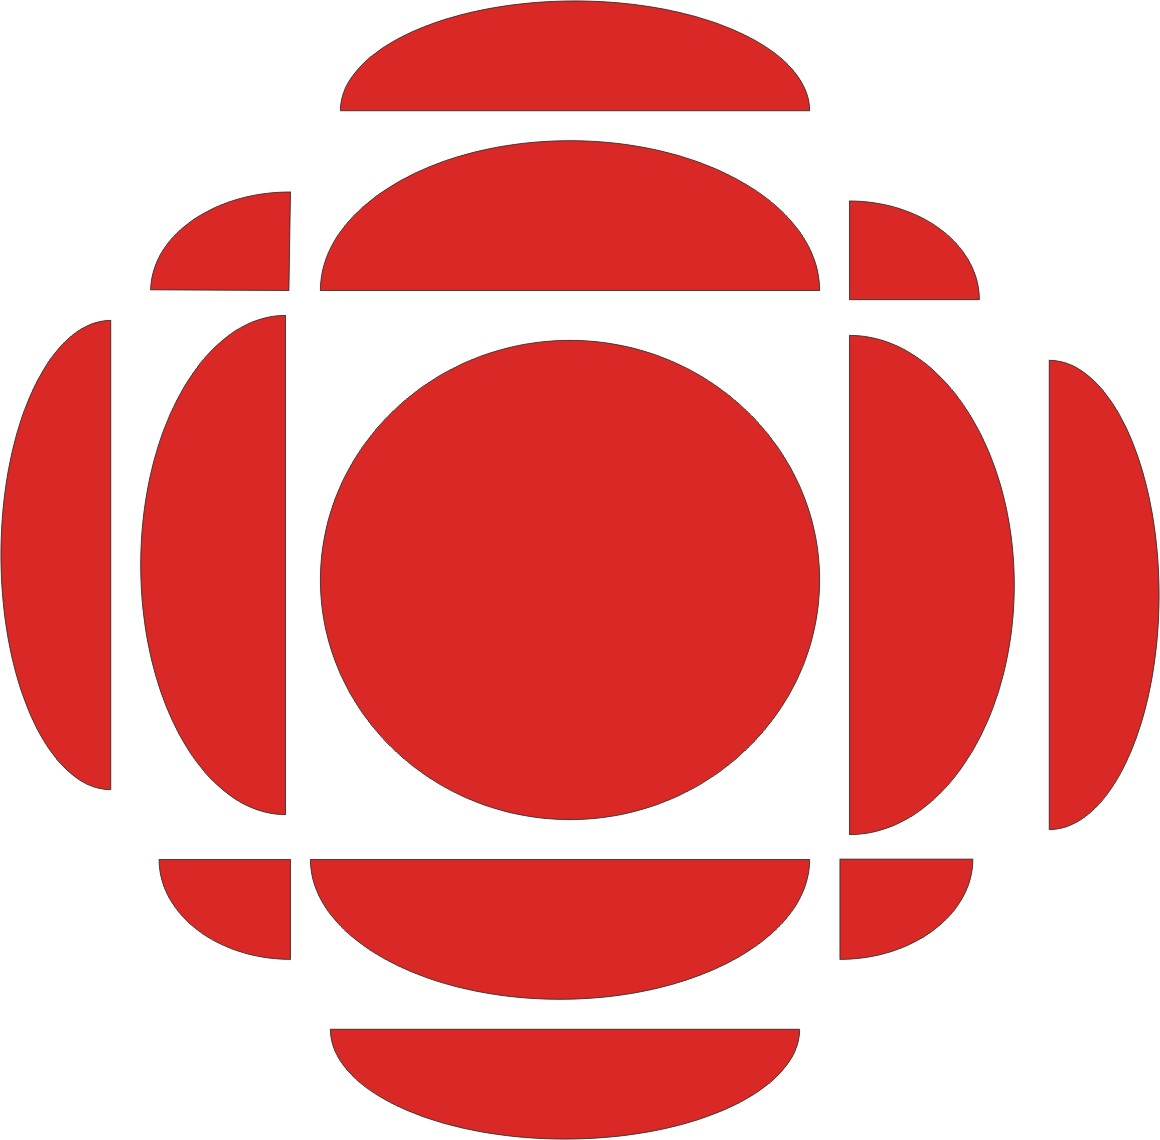 cbc amp pbs team up for putin doc starting tonight